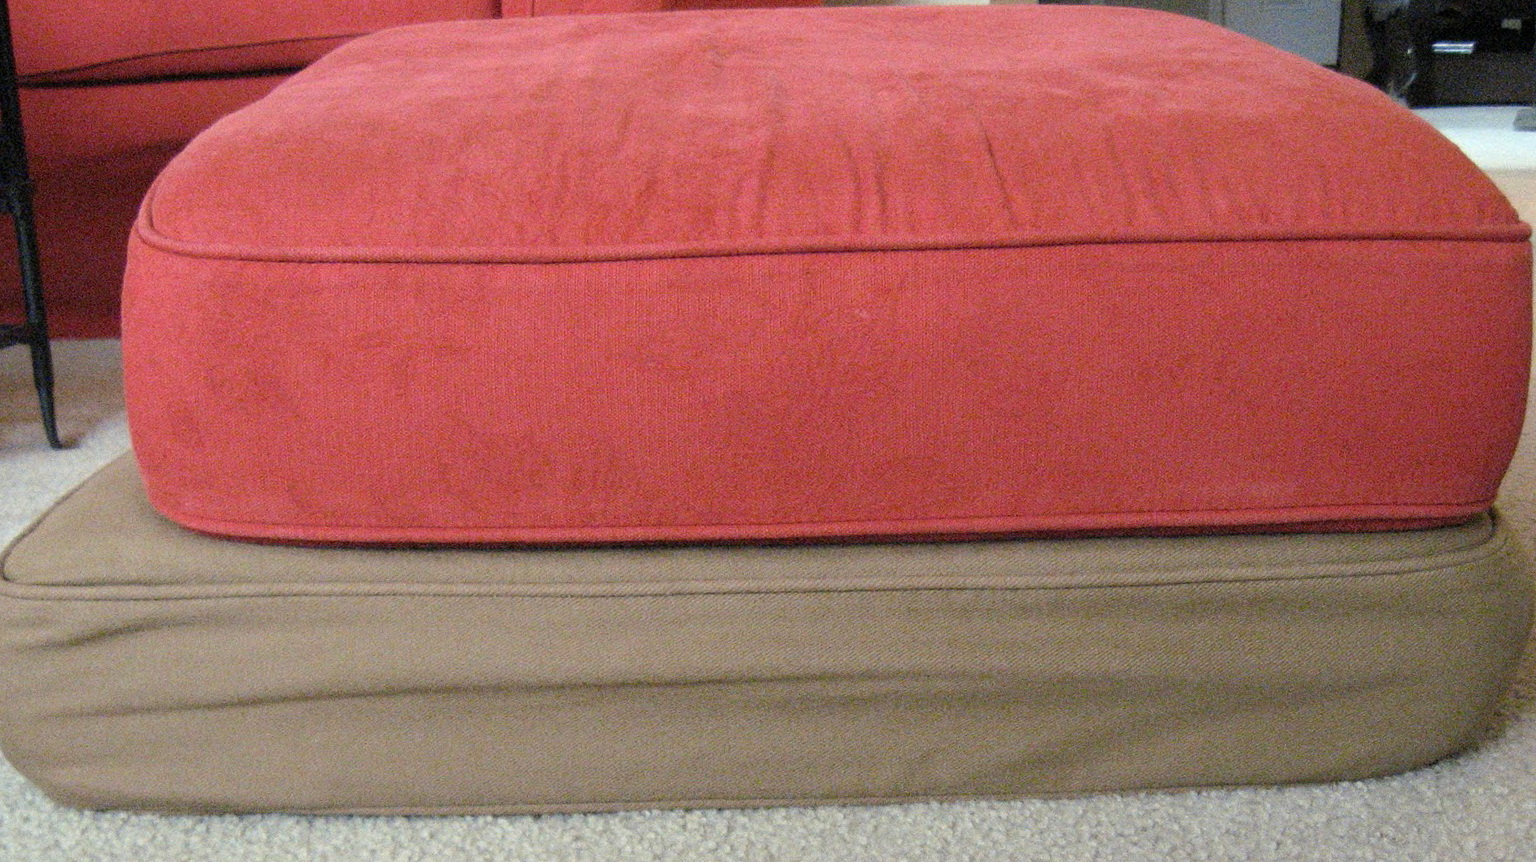 Couch Cushions Replacement Covers Home Design Ideas